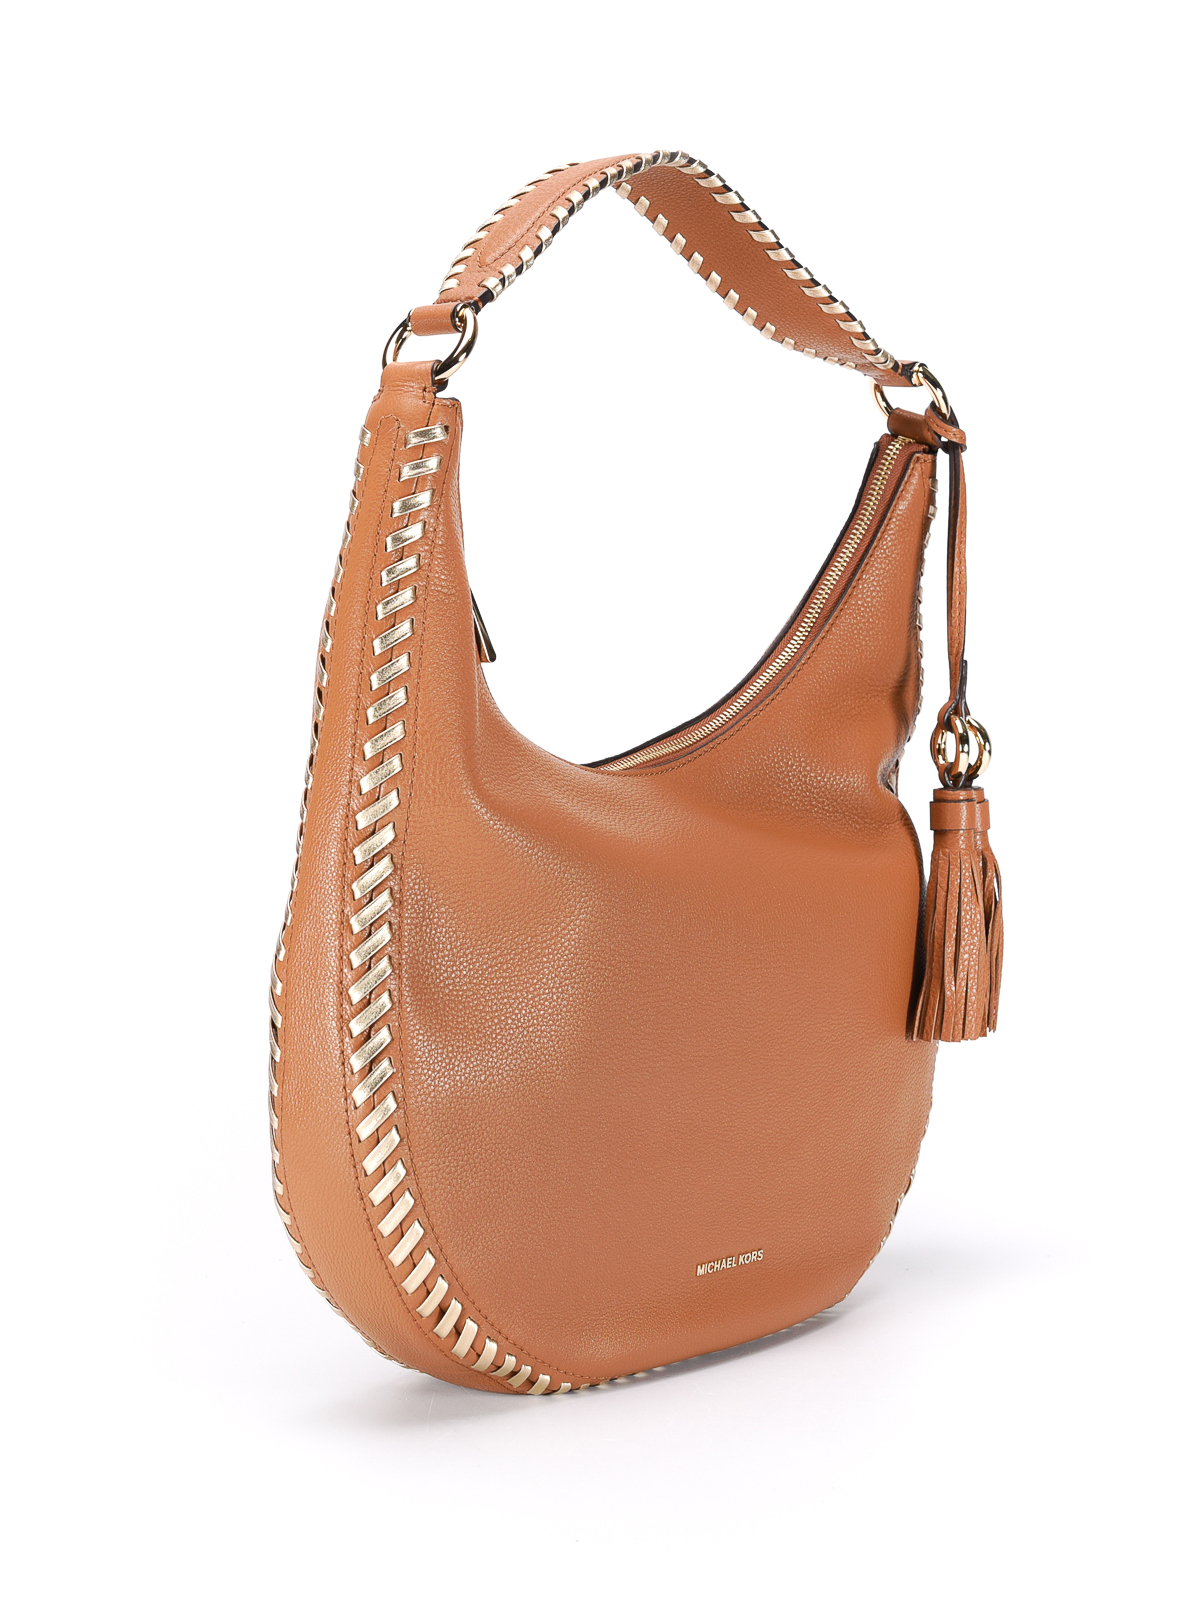 9d7bab1897bc MICHAEL KORS  shoulder bags online - Lauryn large shoulder bag